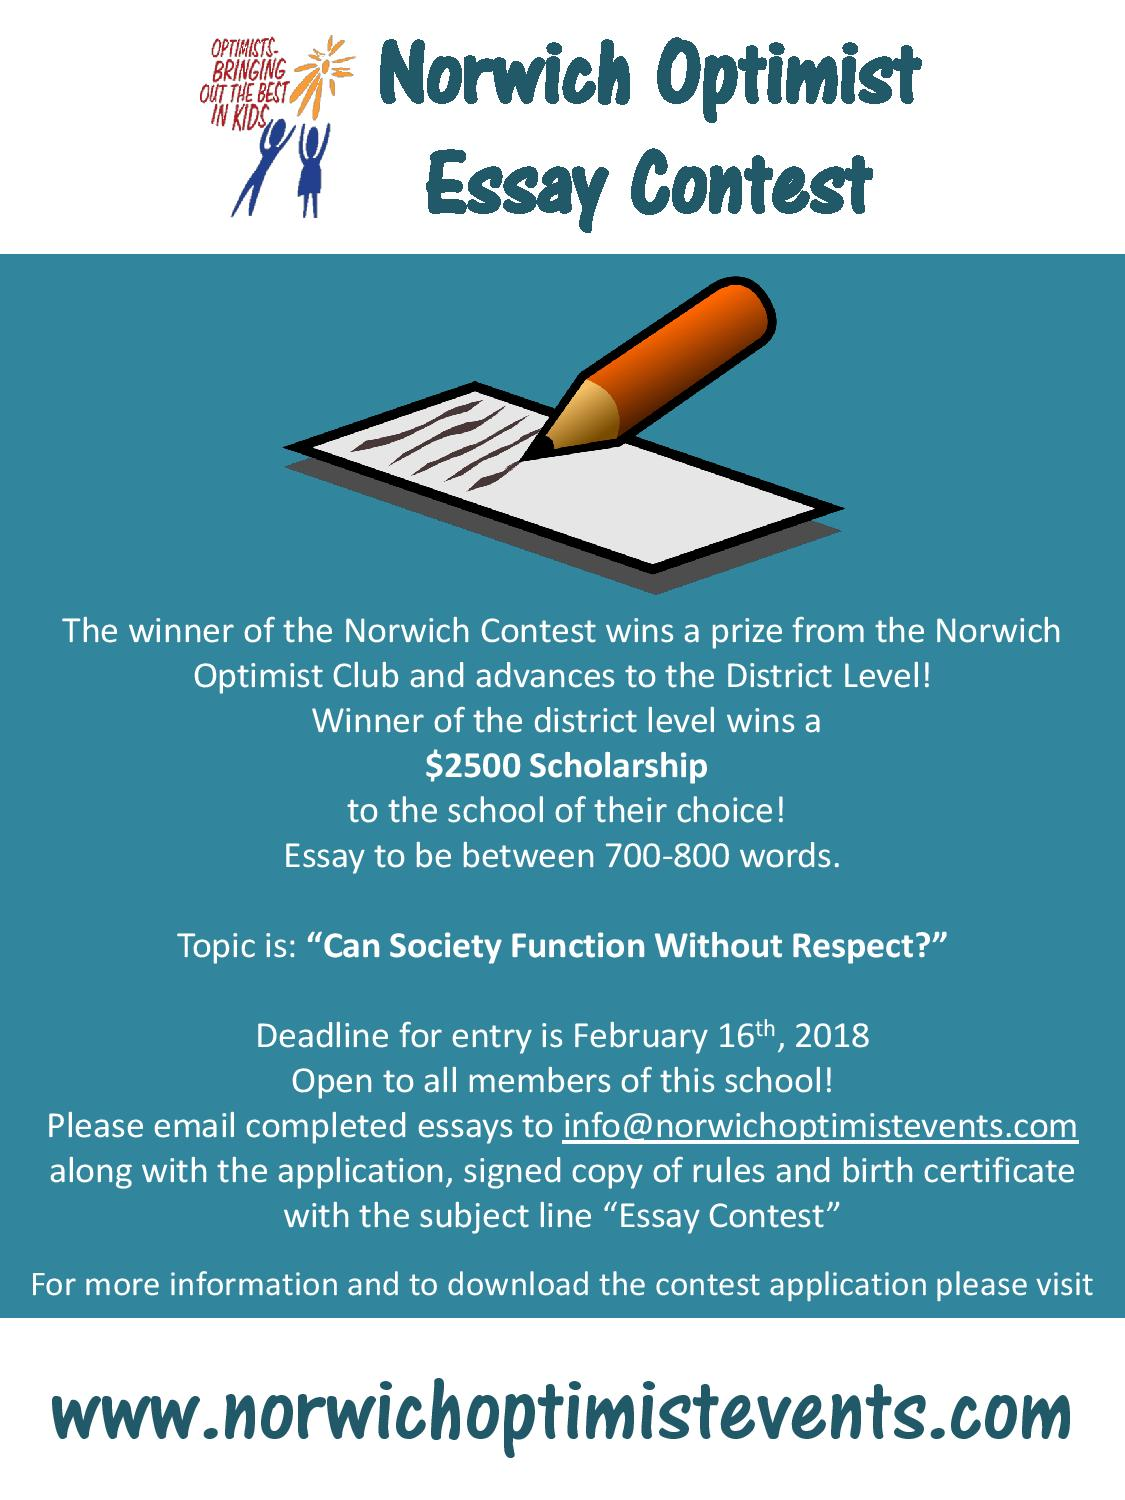 norwich optimist essay contest The o'fallon optimist club #30-295 is sponsoring both an essay and oratorical contest with scholarships awarded to the students that win the competition at the east missouri district level, according.